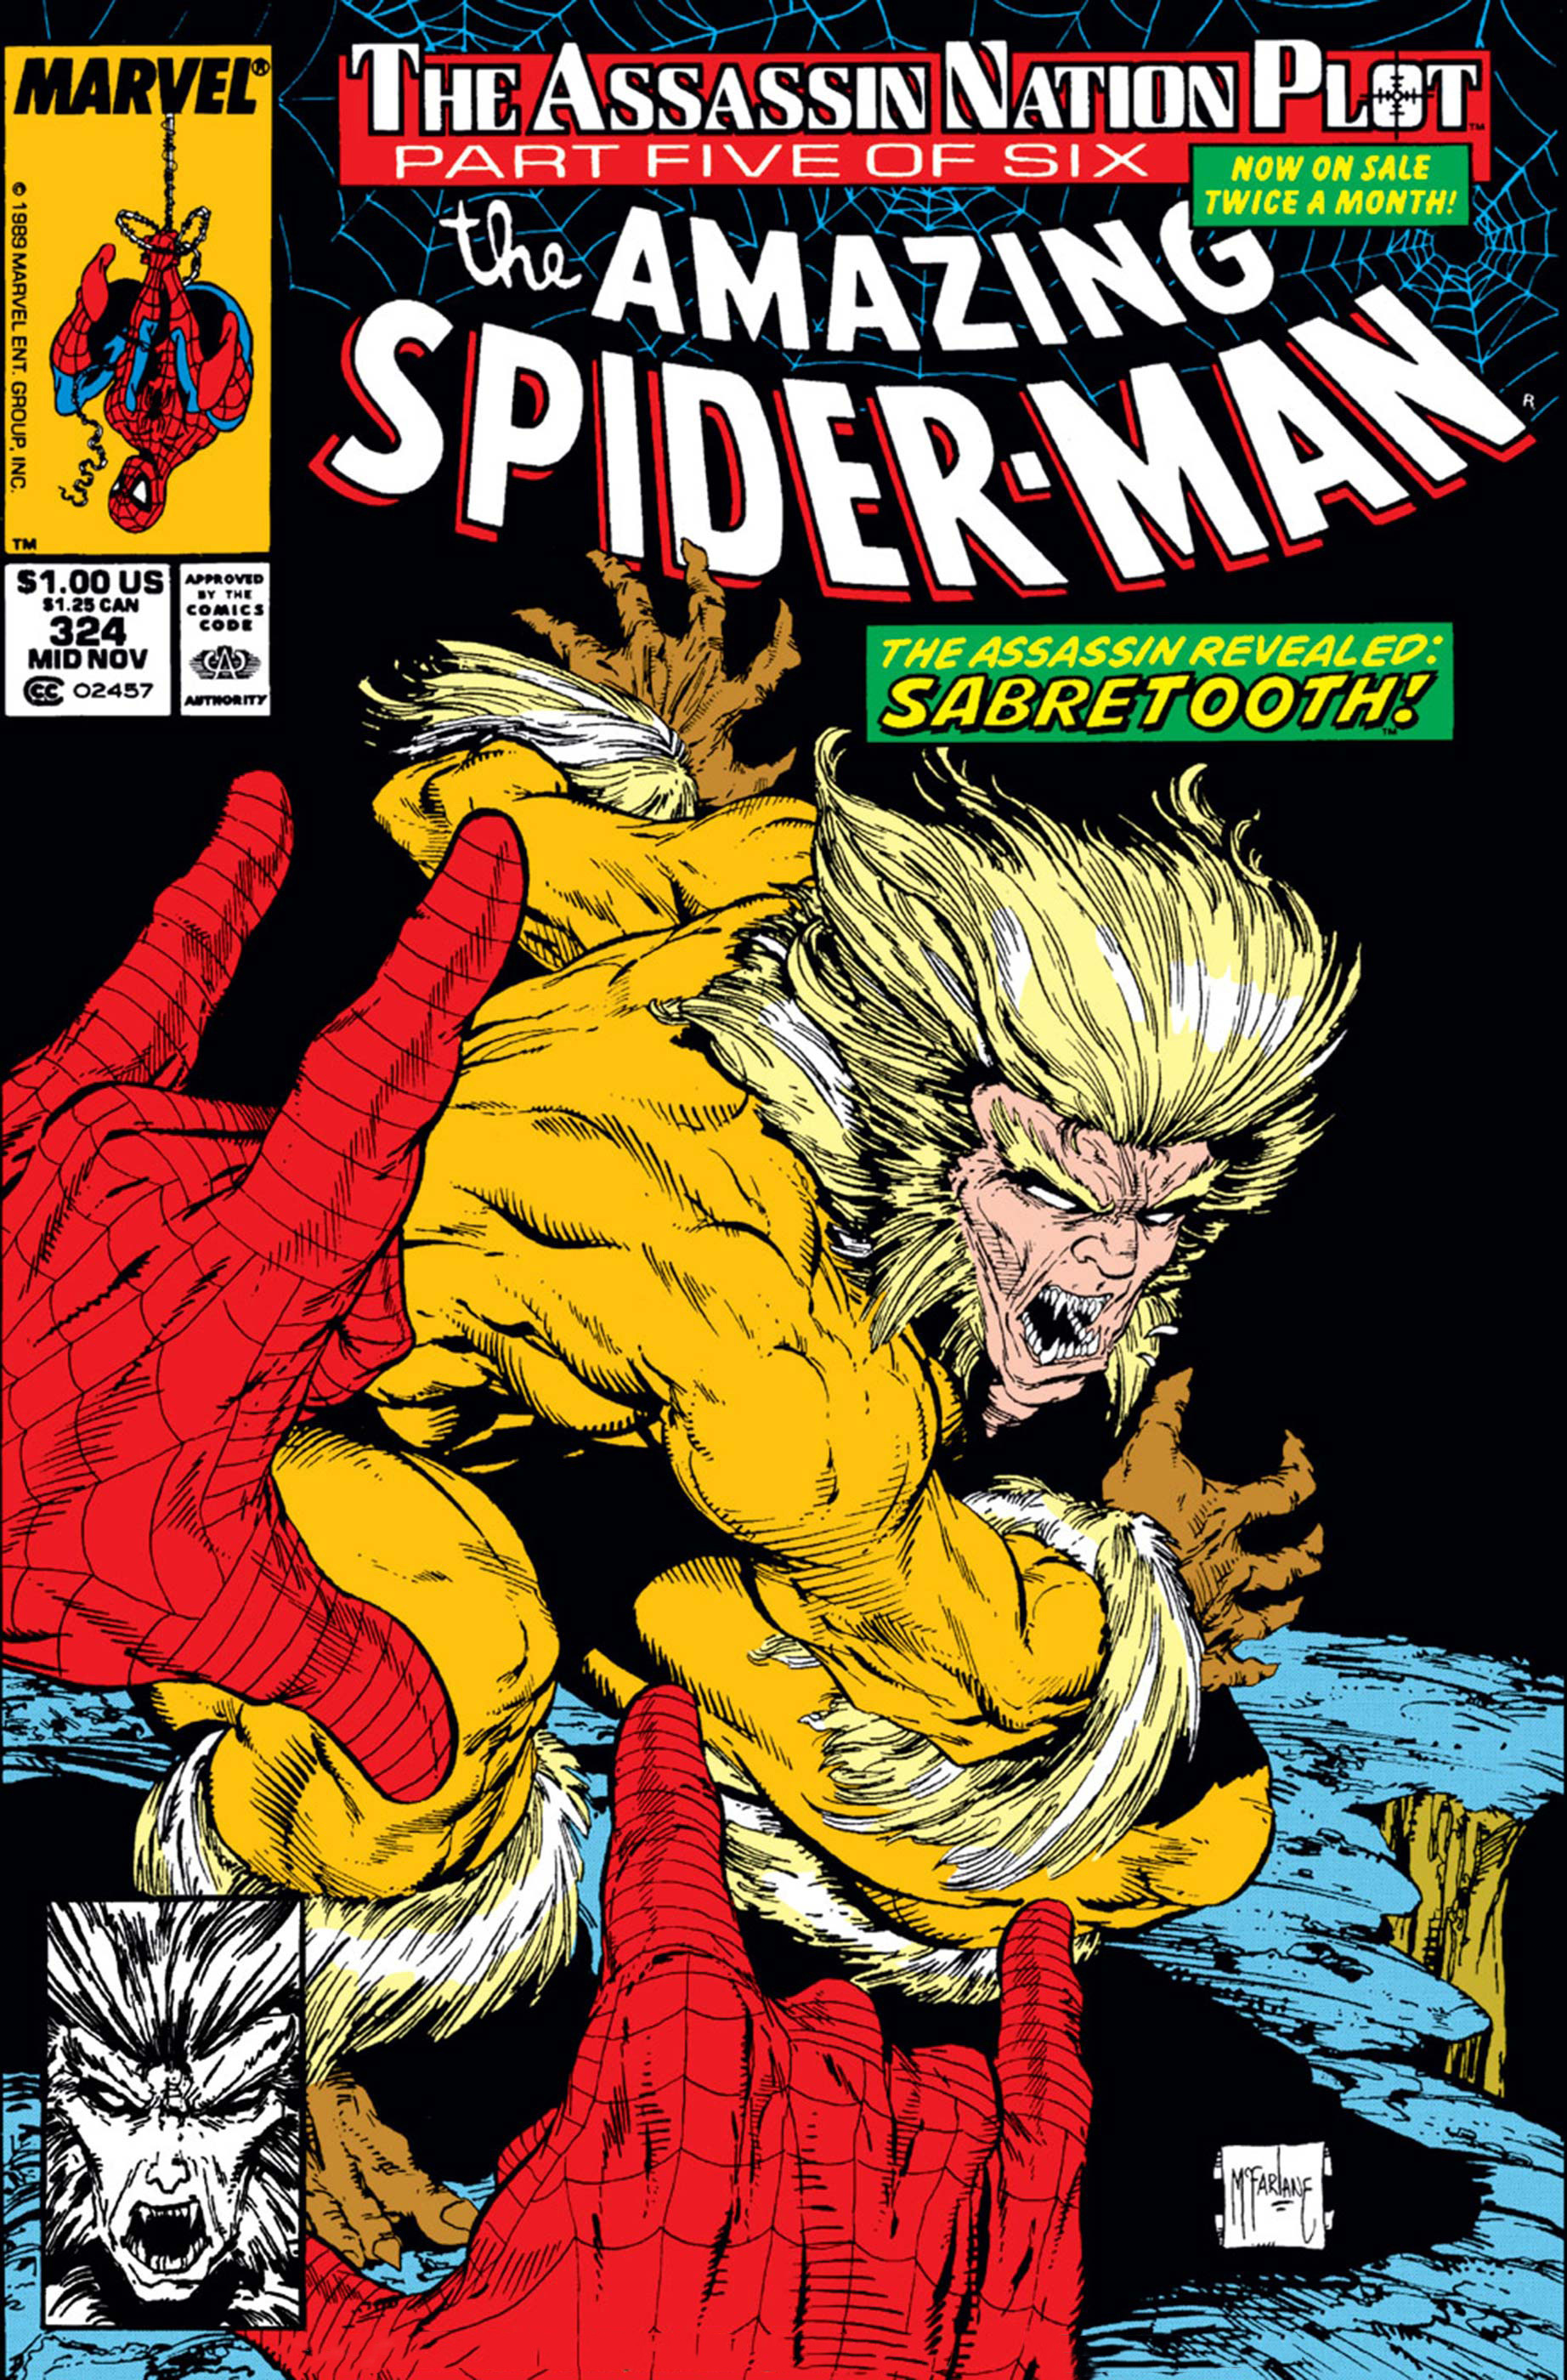 The Amazing Spider-Man (1963) #324